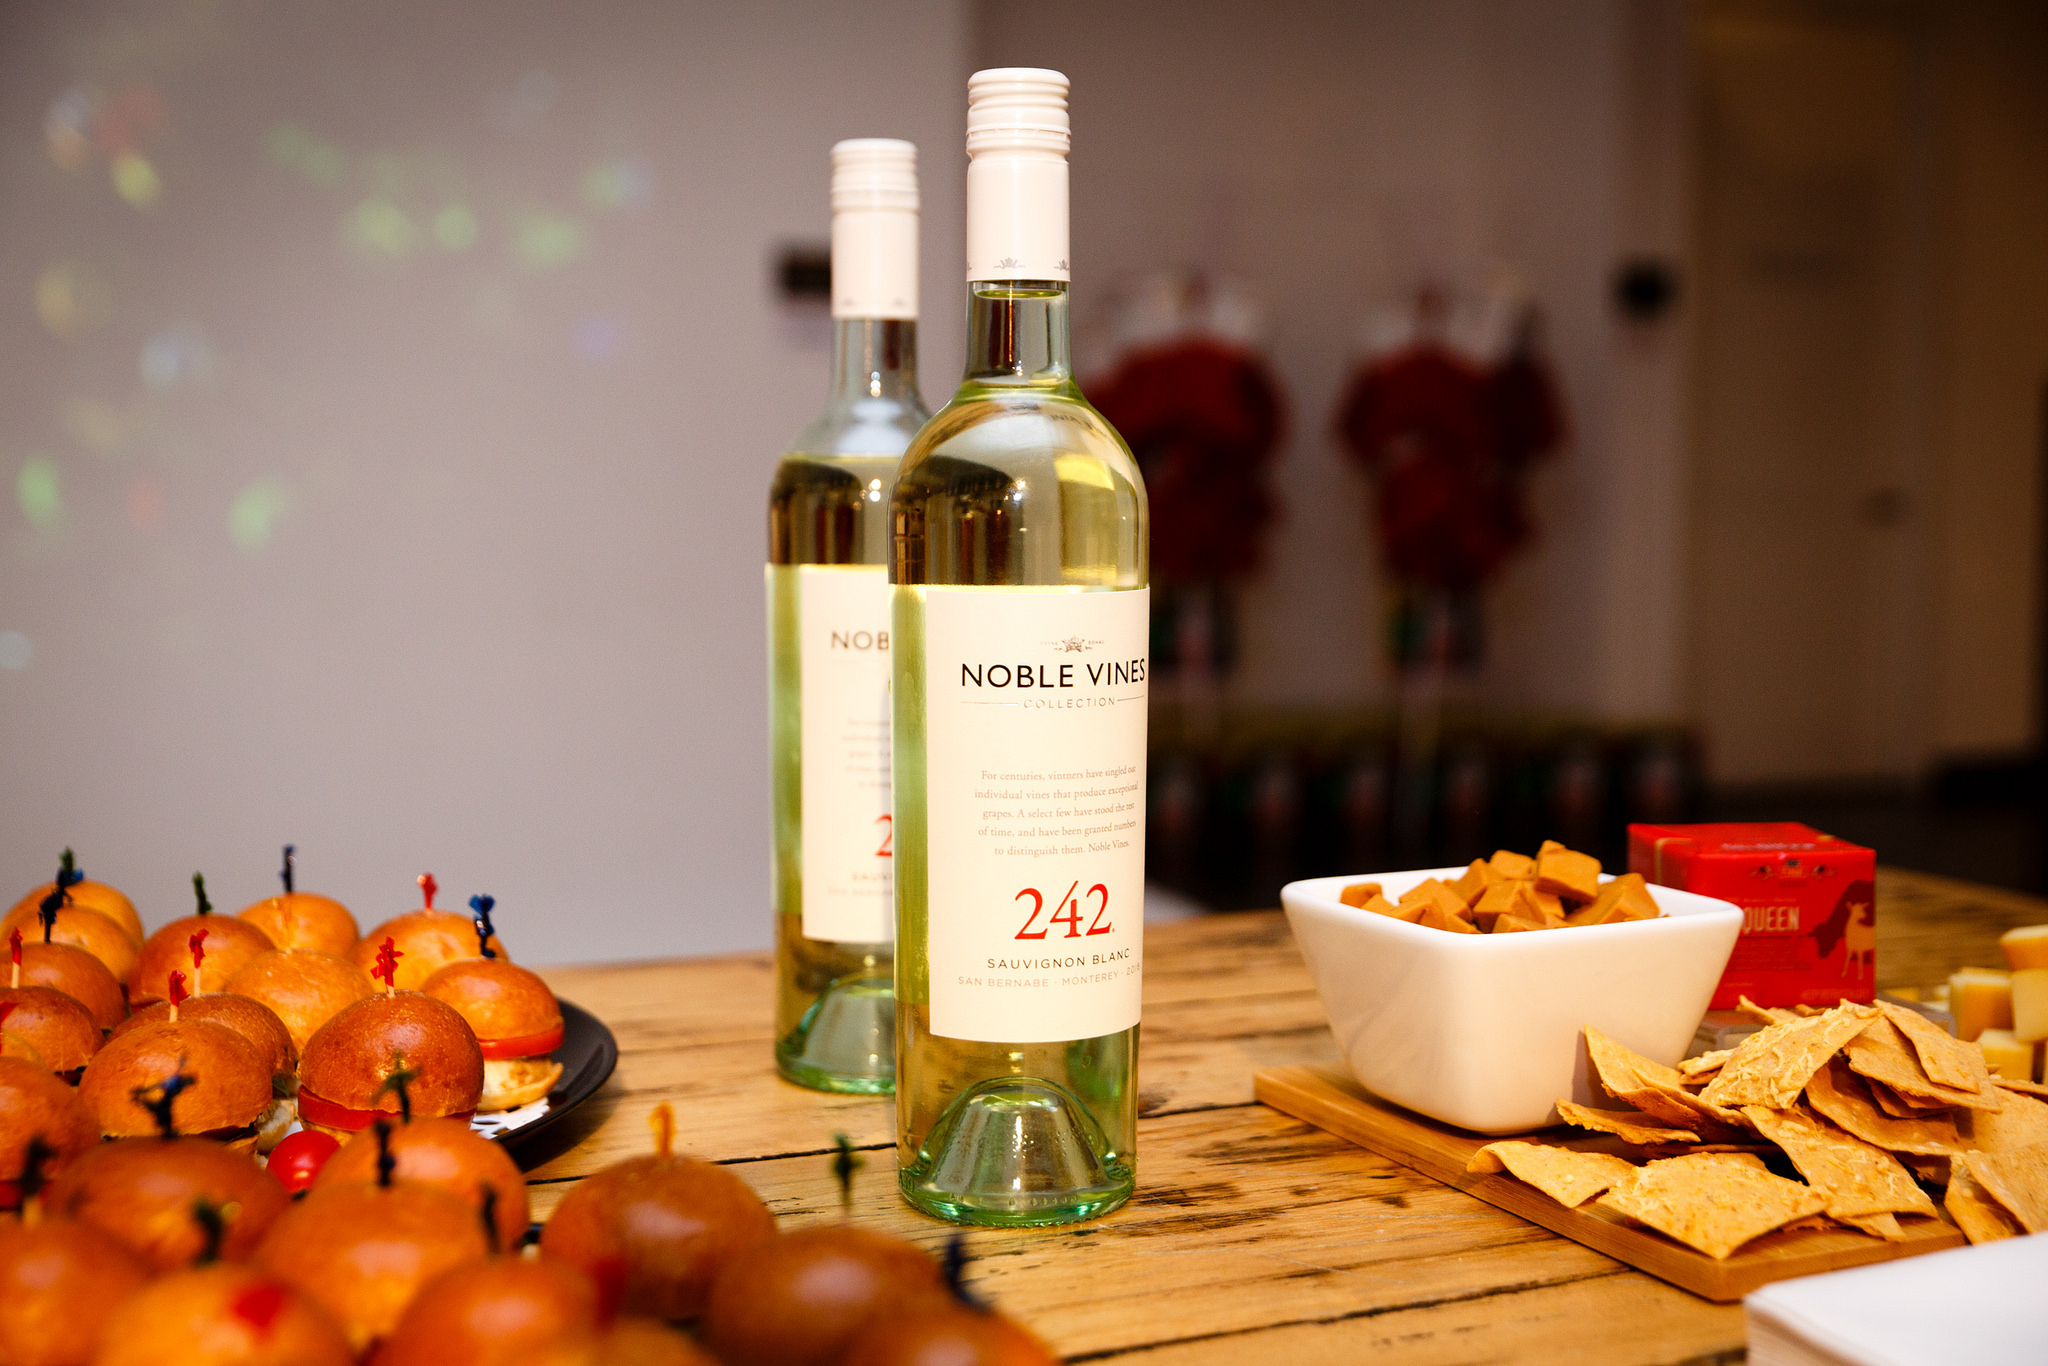 Noble Vines Sauvignon Blanc